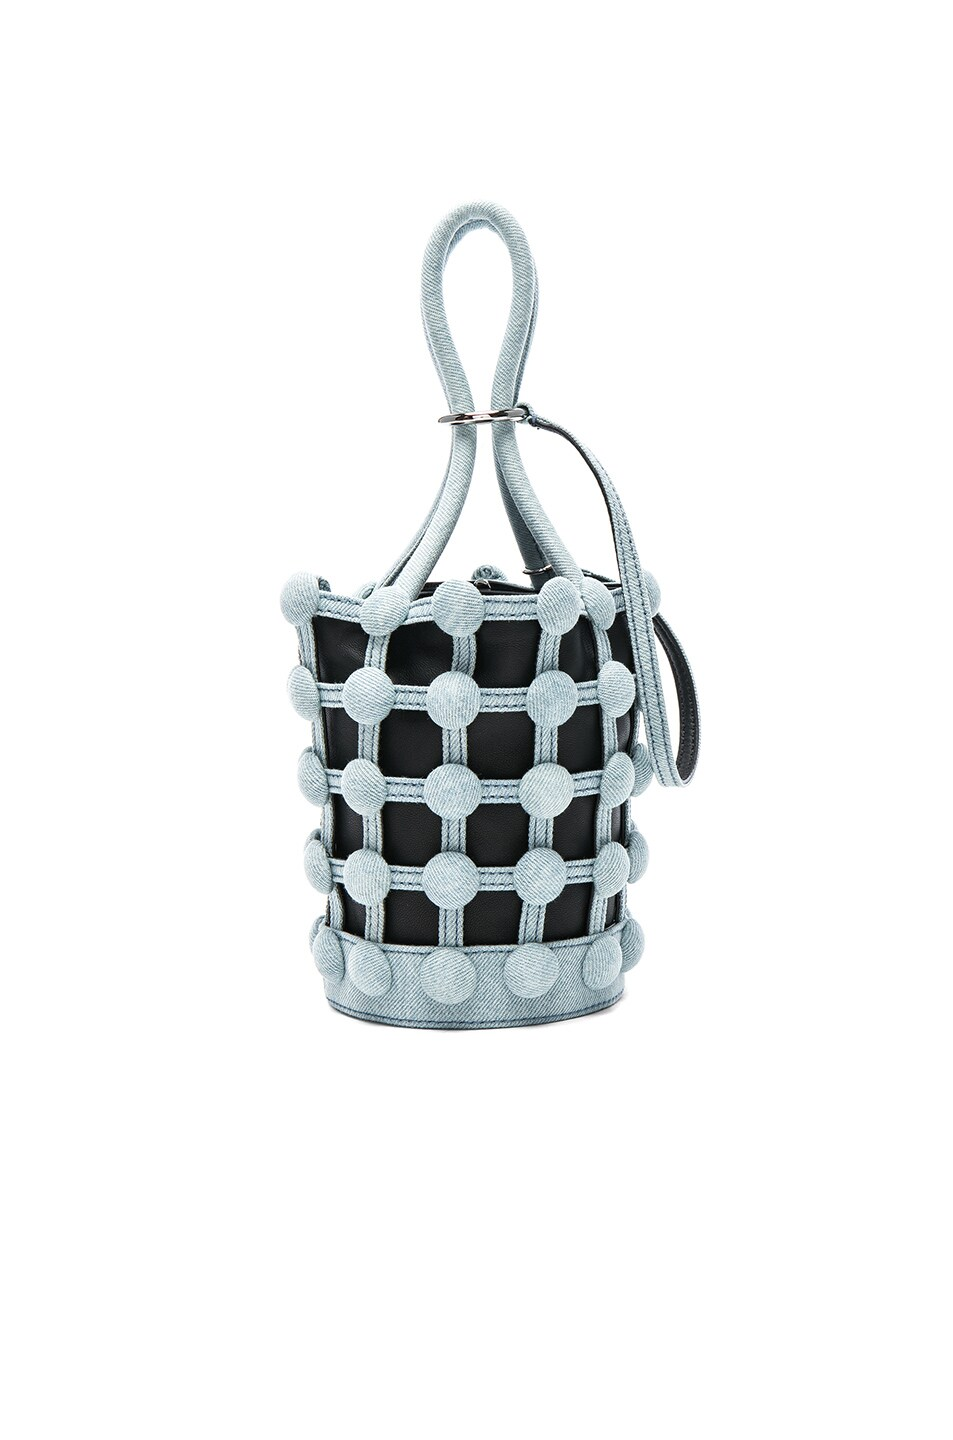 Image 1 of Alexander Wang Roxy Dome Stud Mini Bucket Bag in Bleached